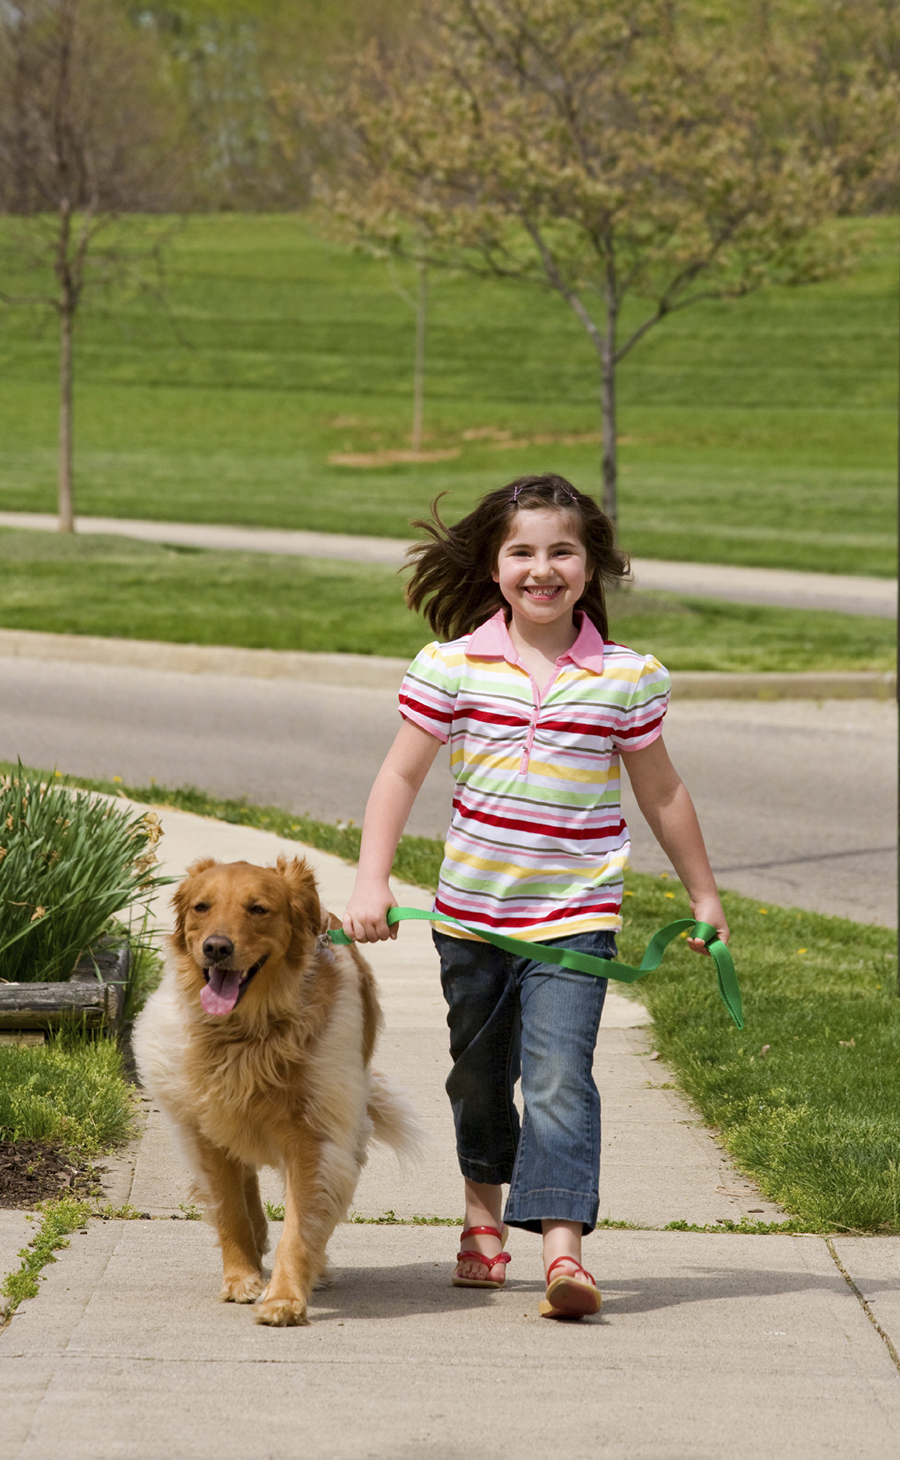 Little Girl Walking Dog - Stock Image 3x4.jpg